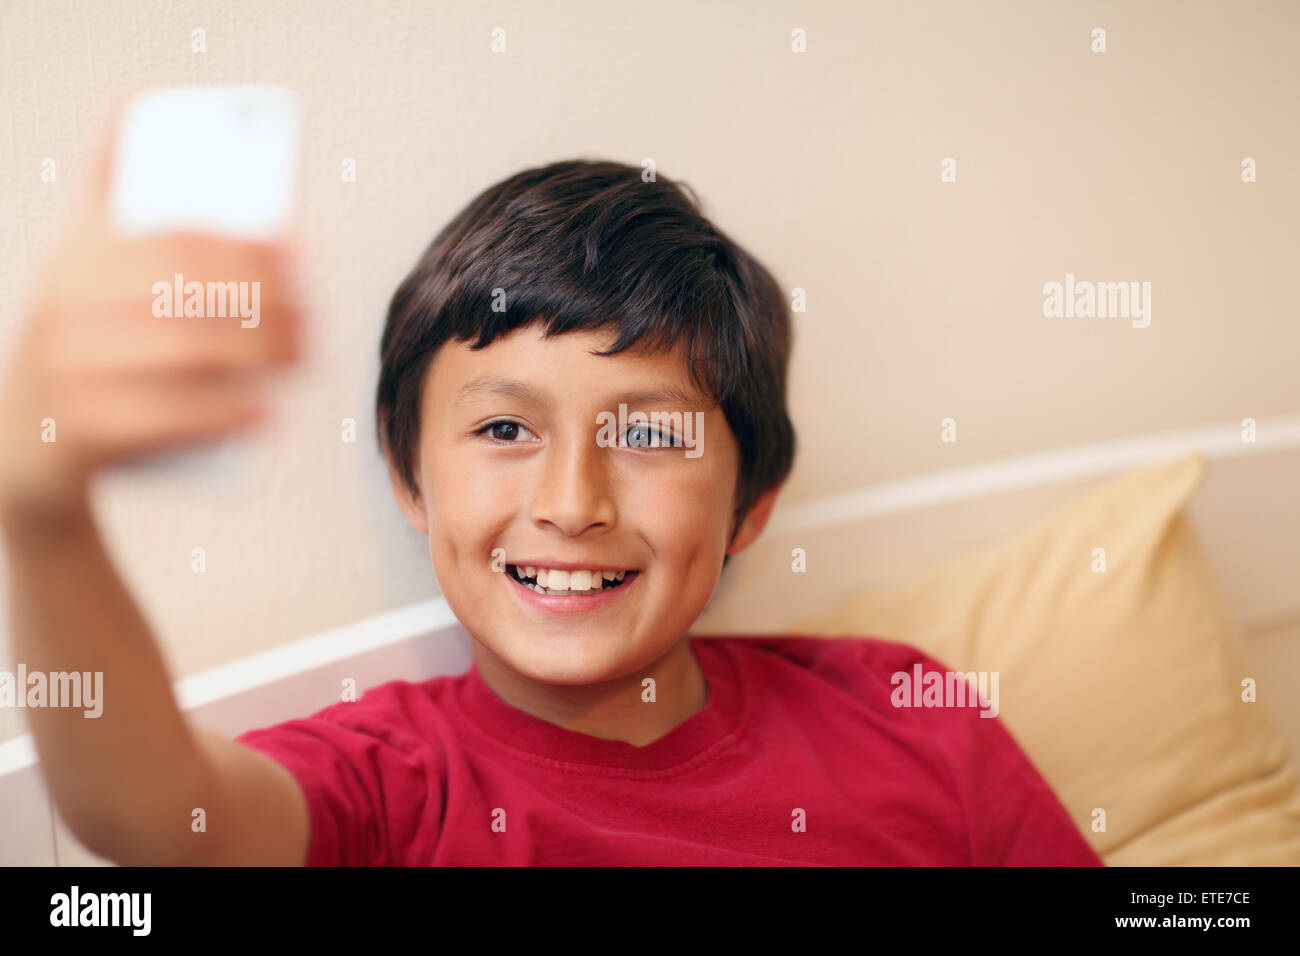 Young boy making selfie pictures with smart phone - with shallow depth of field - Stock Image